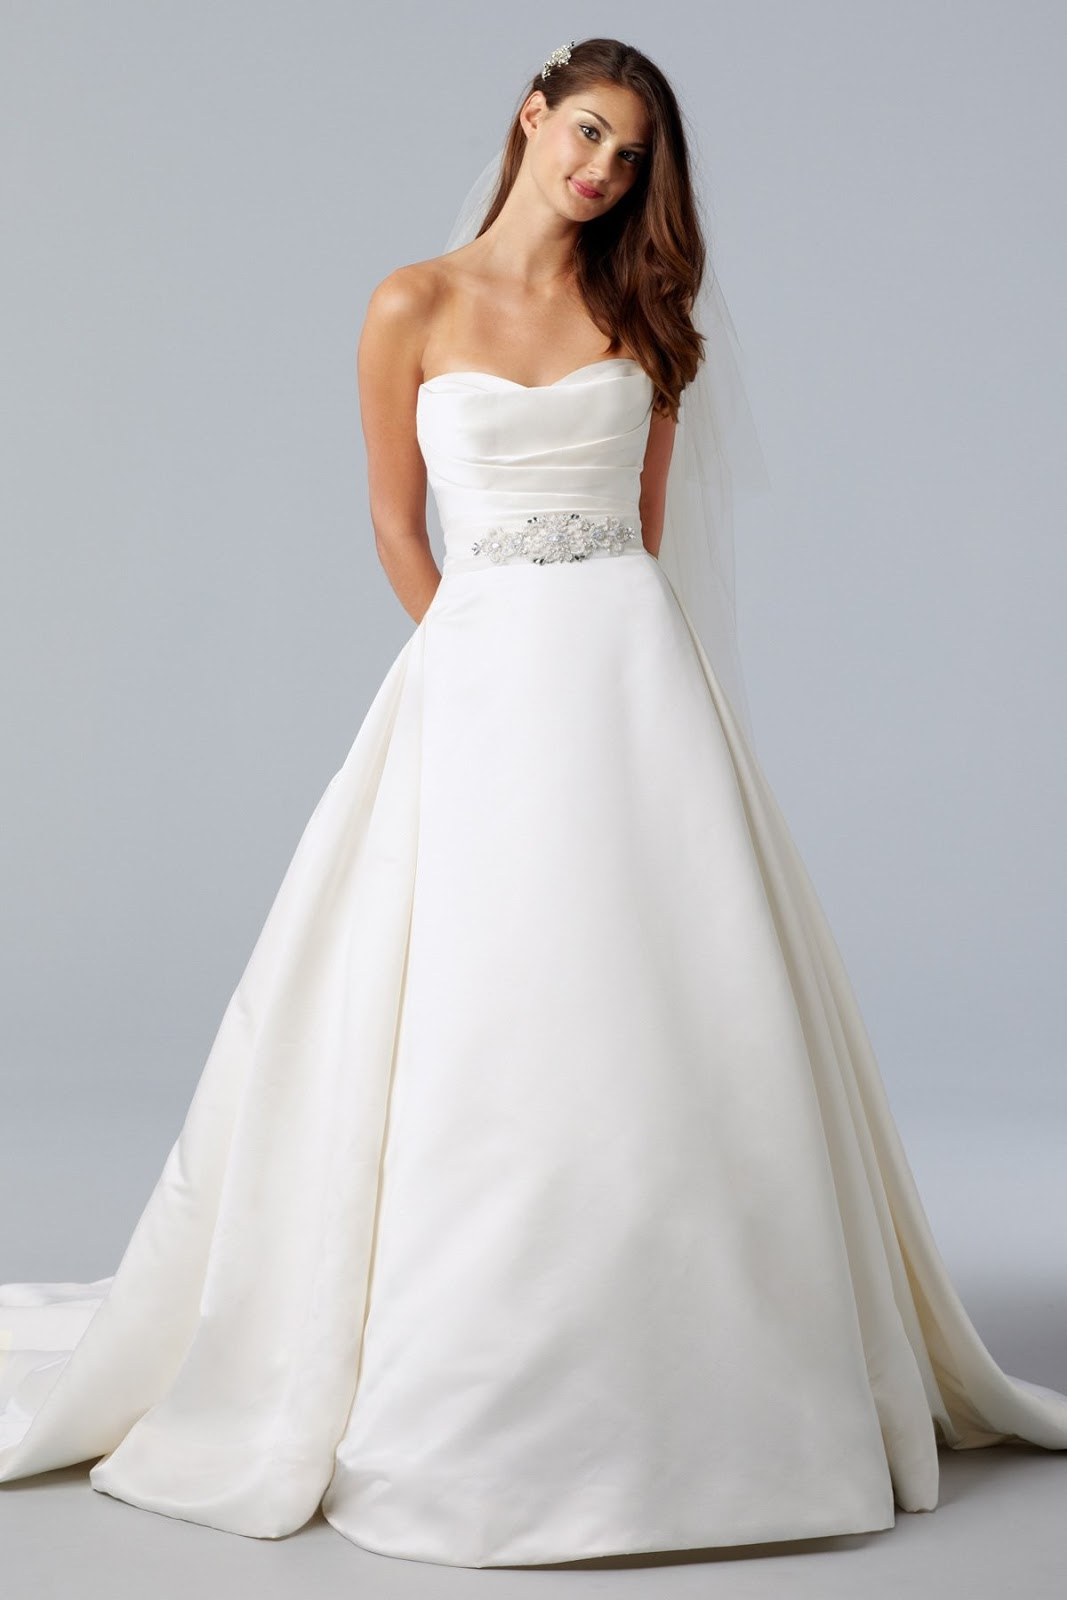 Affordable Unique Wedding Dresses, 2015 Dresses, Rent Dresses for Special Occasions, Bridesmaid Dresses Cheap, Bridesmaid Dresses Under 100, Bridesmaid Dresses 2015, Cheap Wedding Dresses, Cheap Summer Dresses